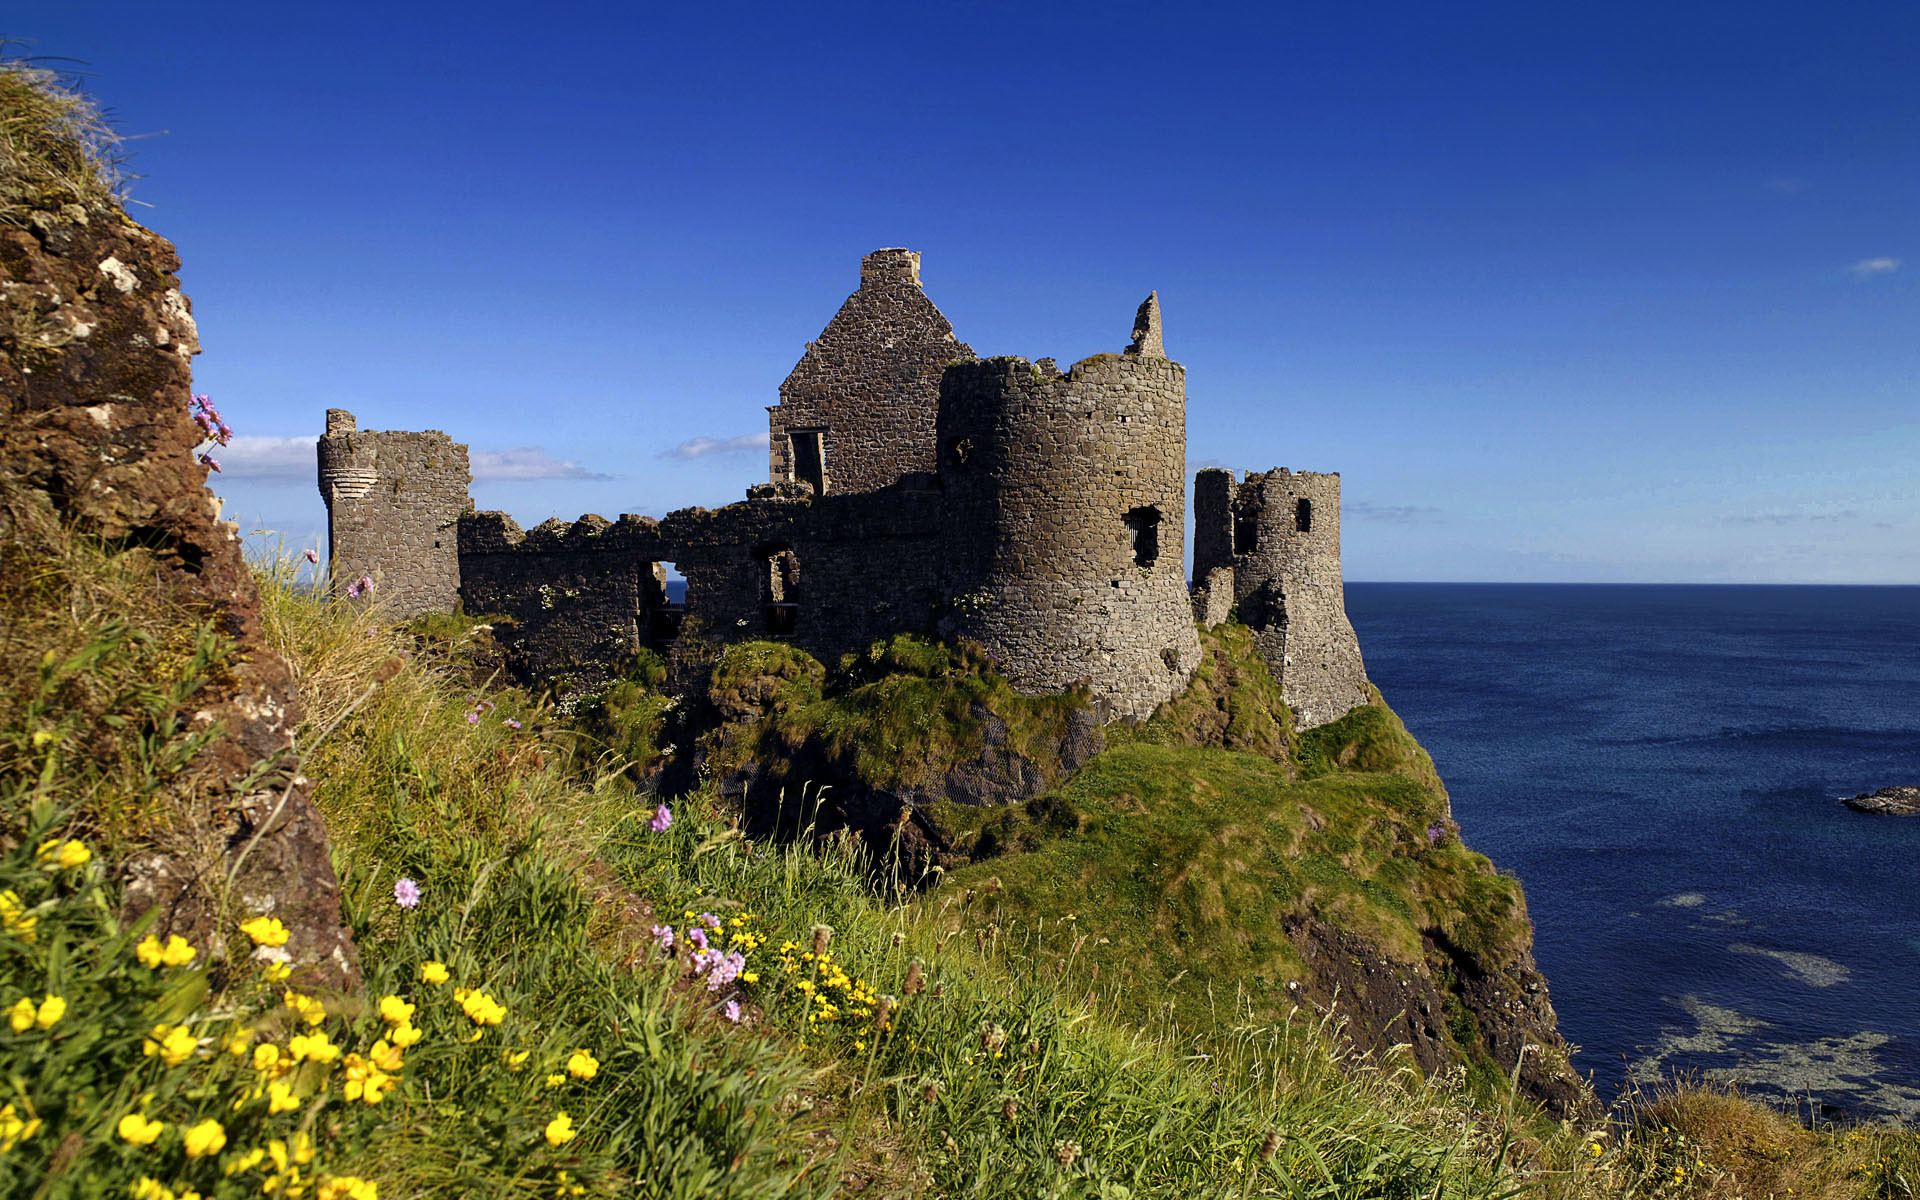 Res: 1920x1200, Ruins of Dunluce Castle, Antrim, Northern Ireland, UK